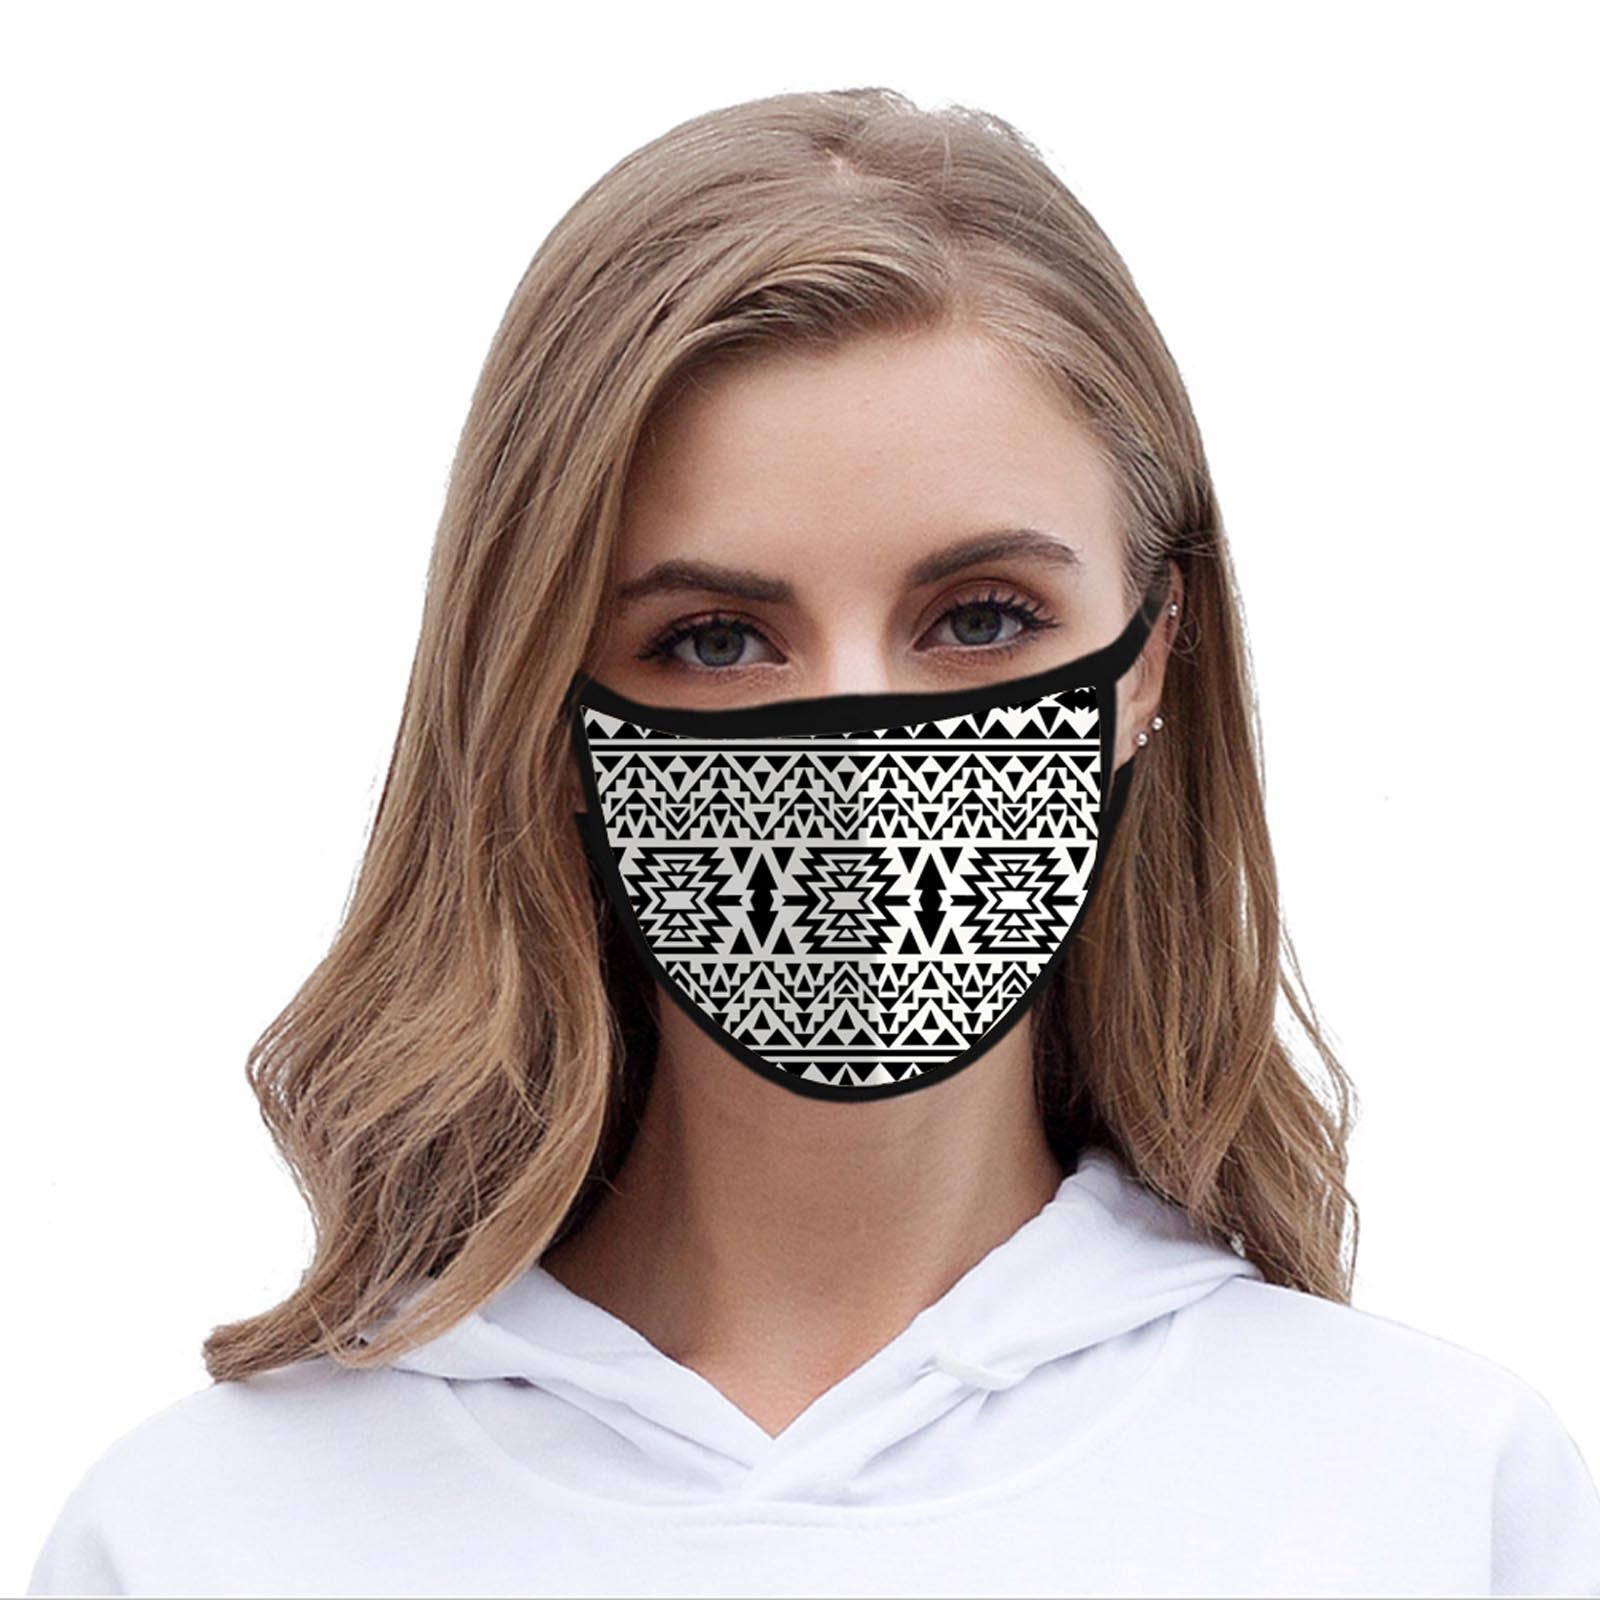 FCM-006 Black & White Aztec Print Fabric Face Mask Double Layer Set of 2